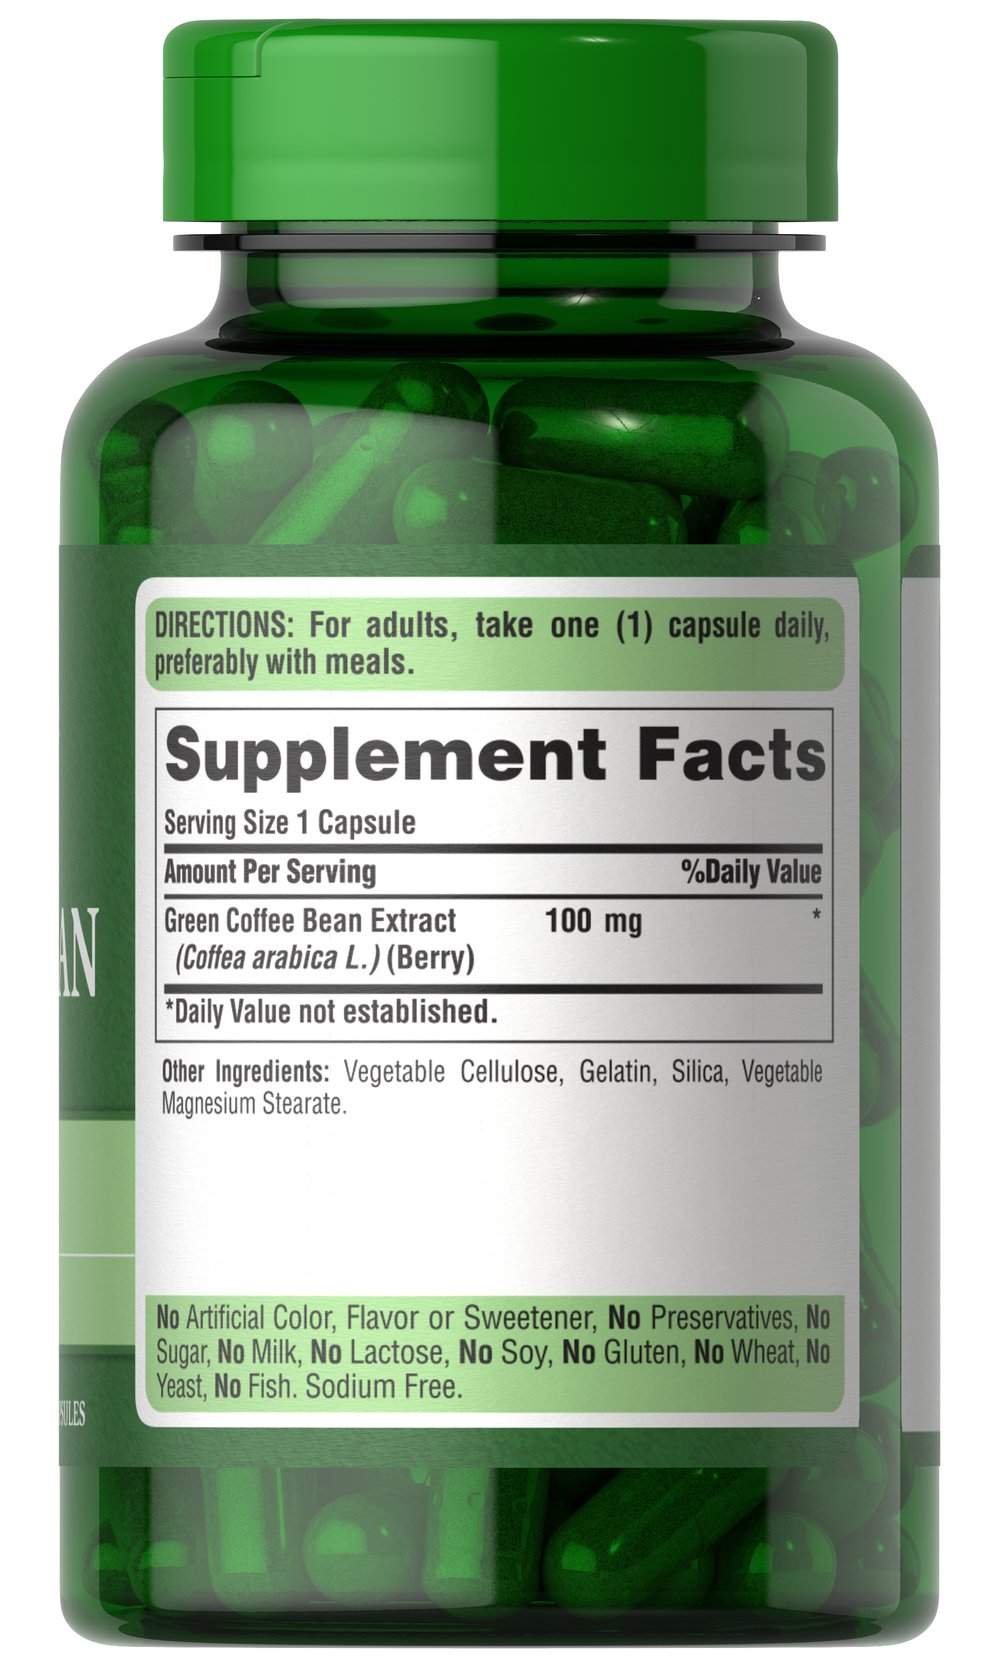 Green Coffee Bean Extract 100 mg